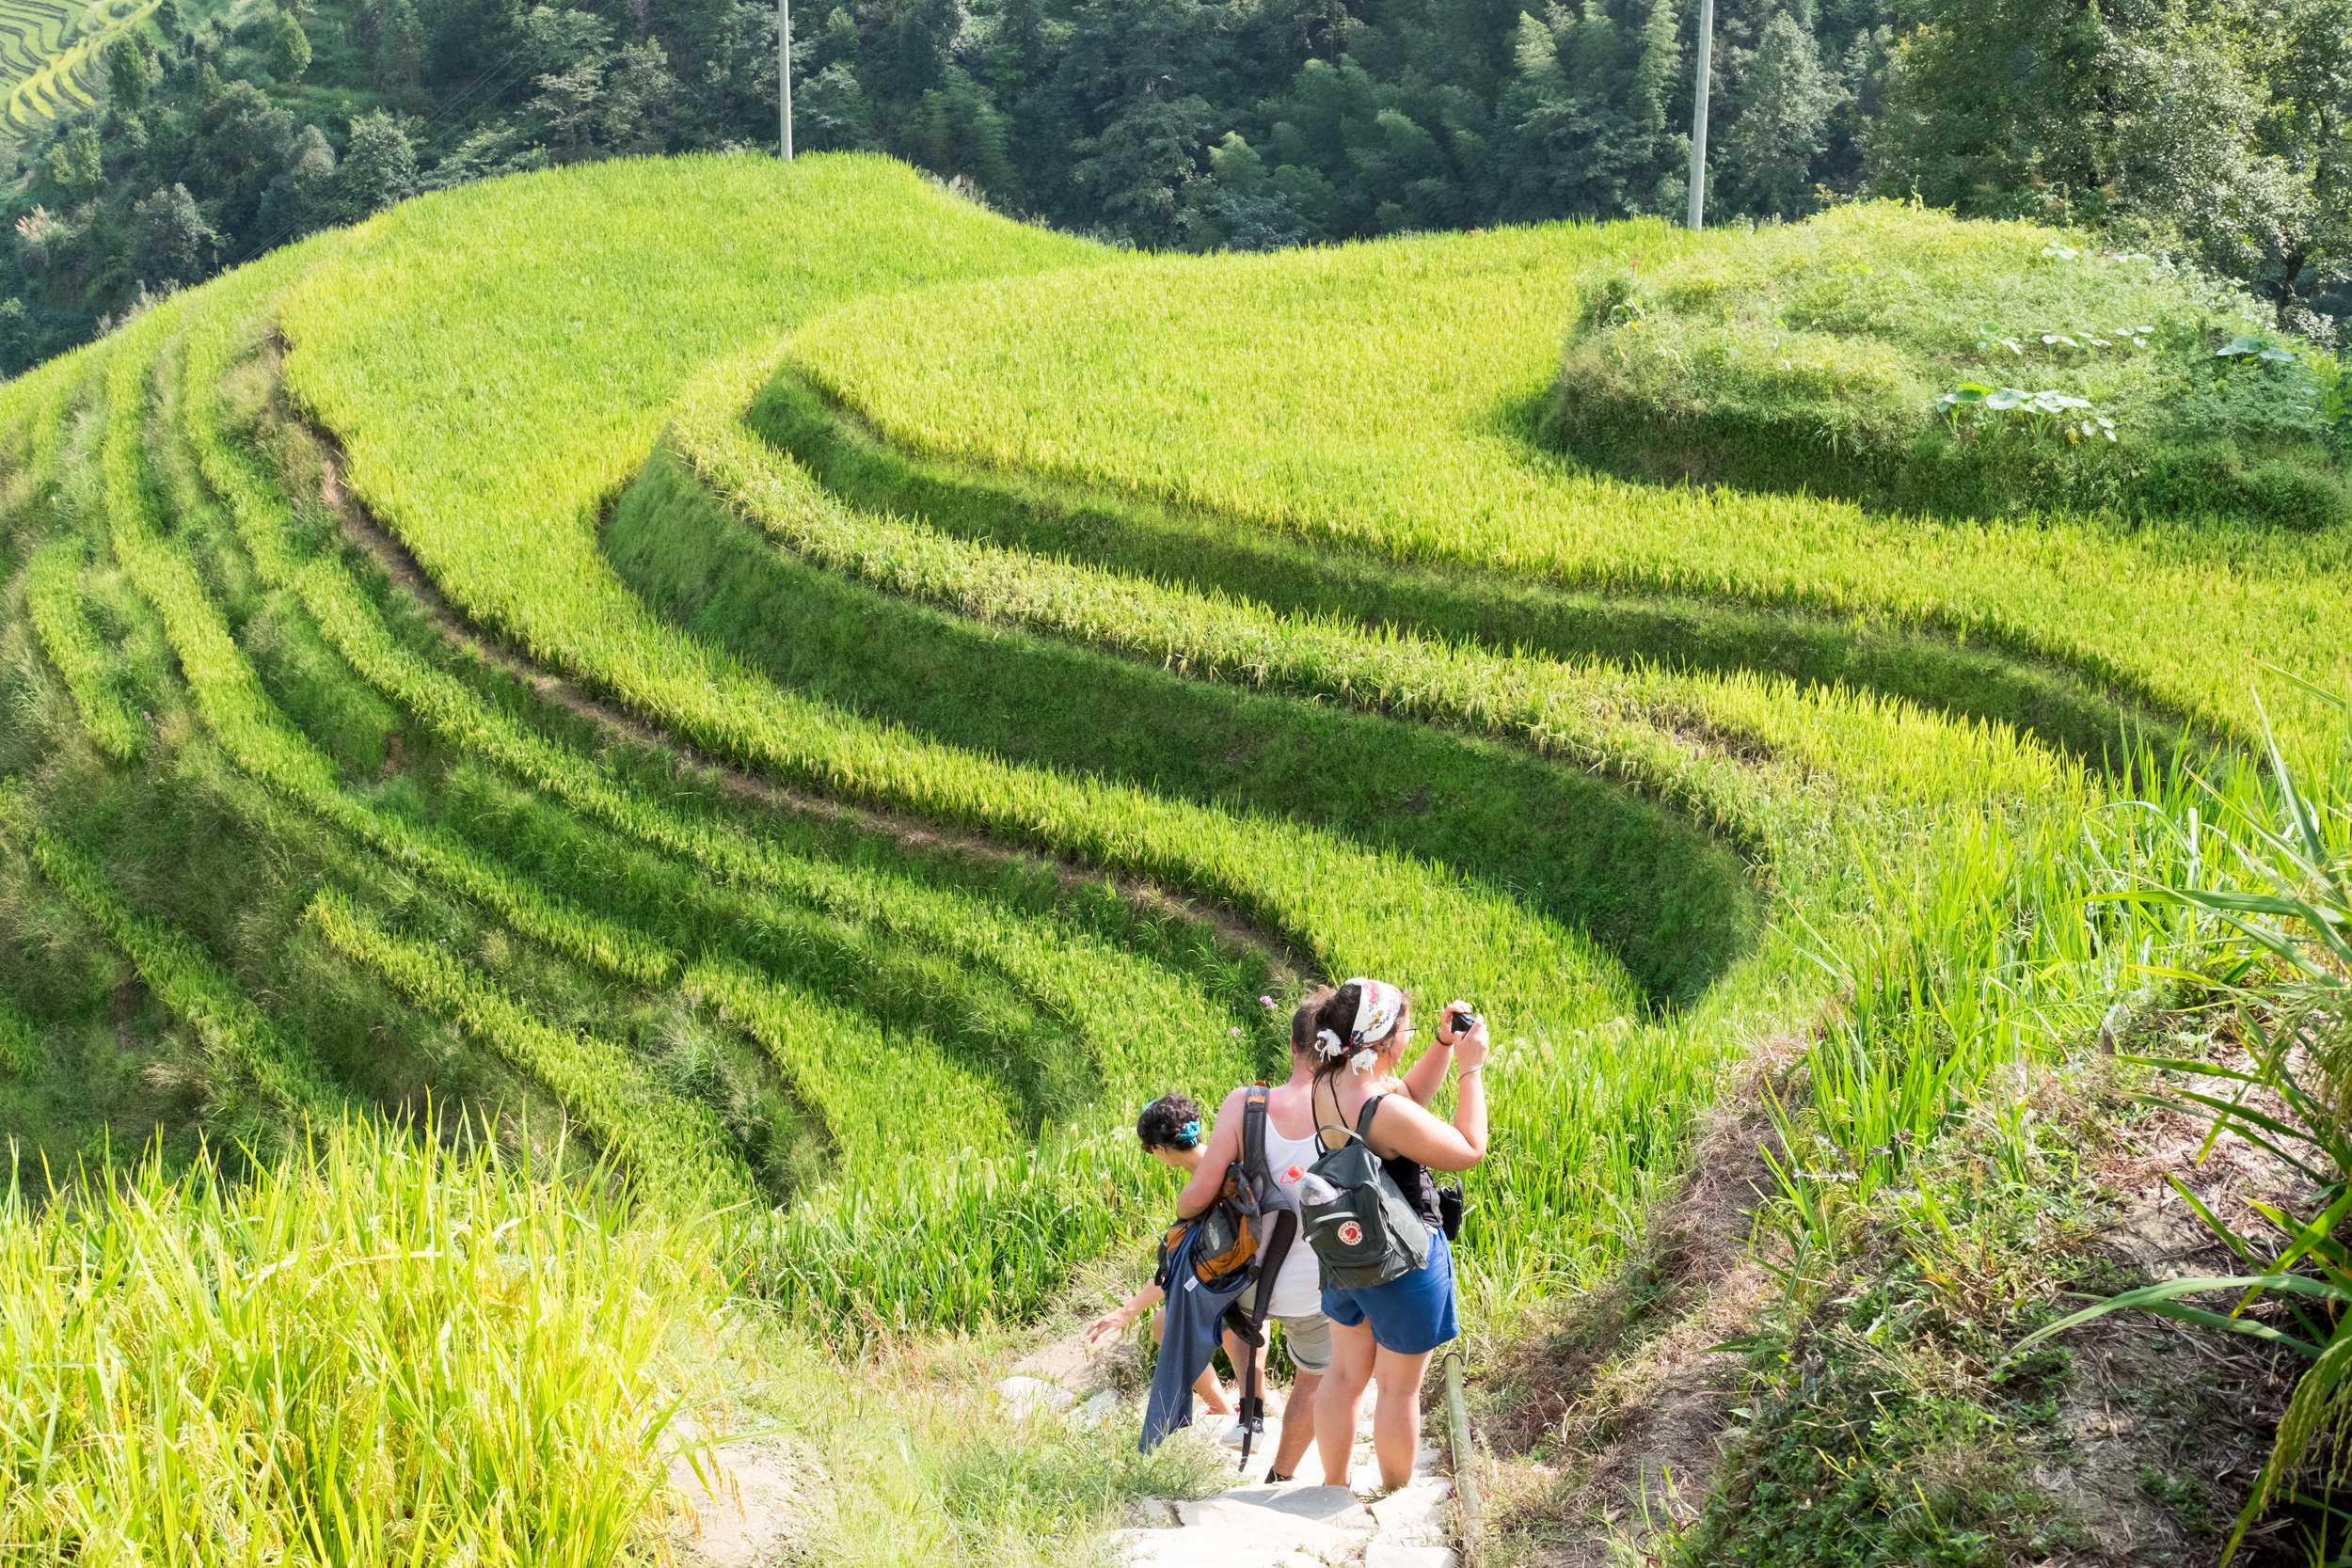 We climbed the rice terraces with a group of friends